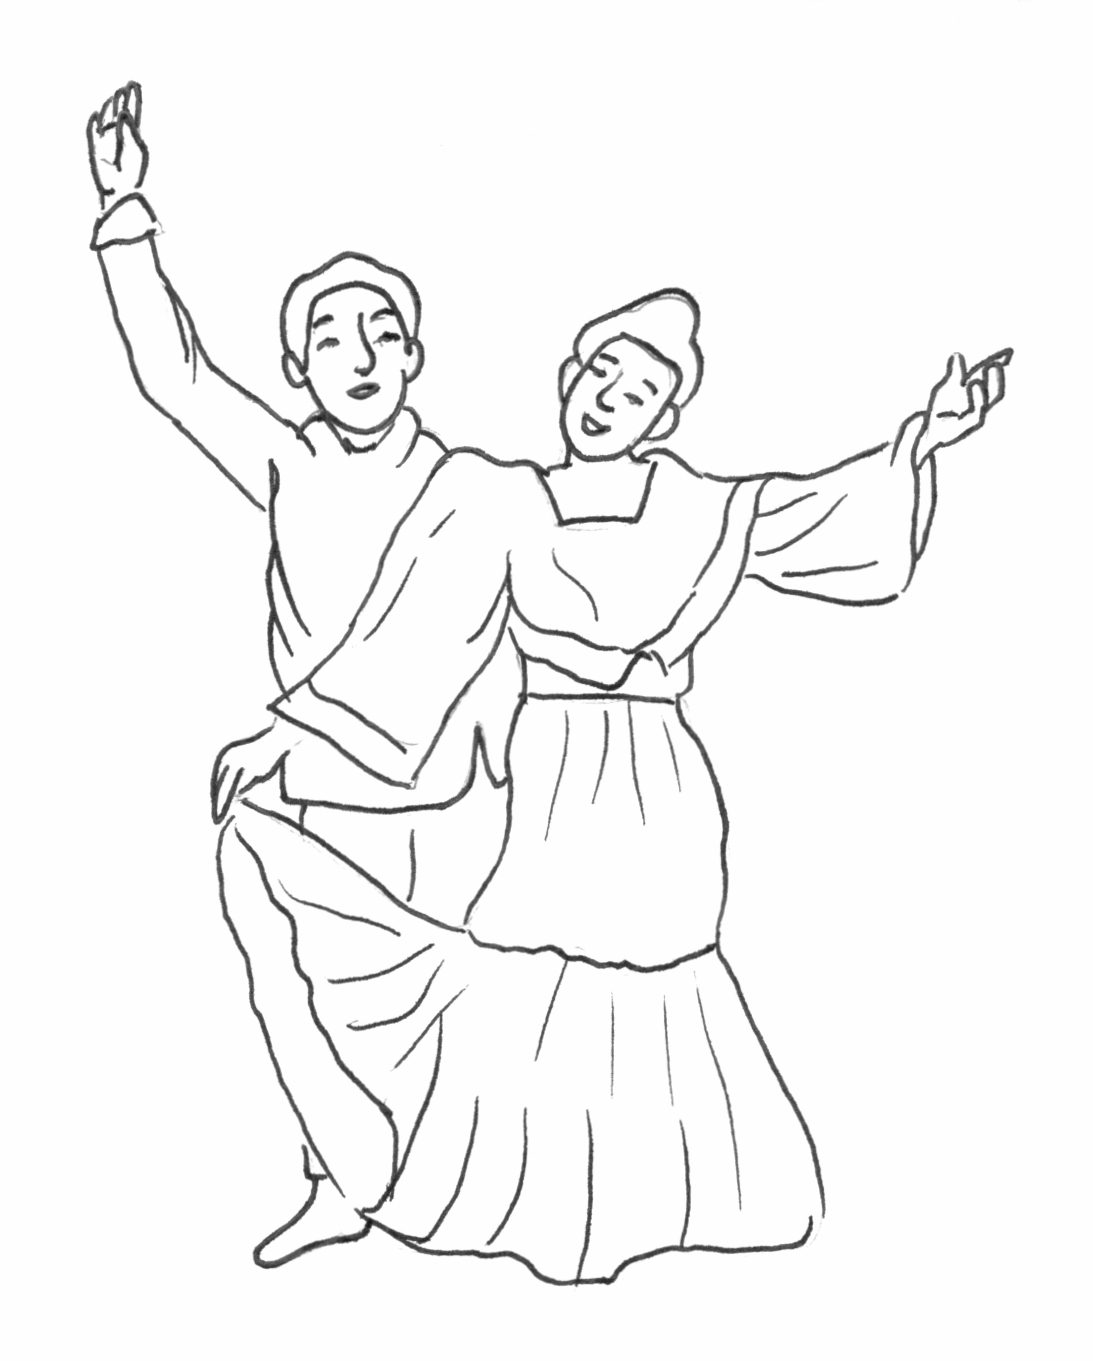 Dance on zoo scene coloring page